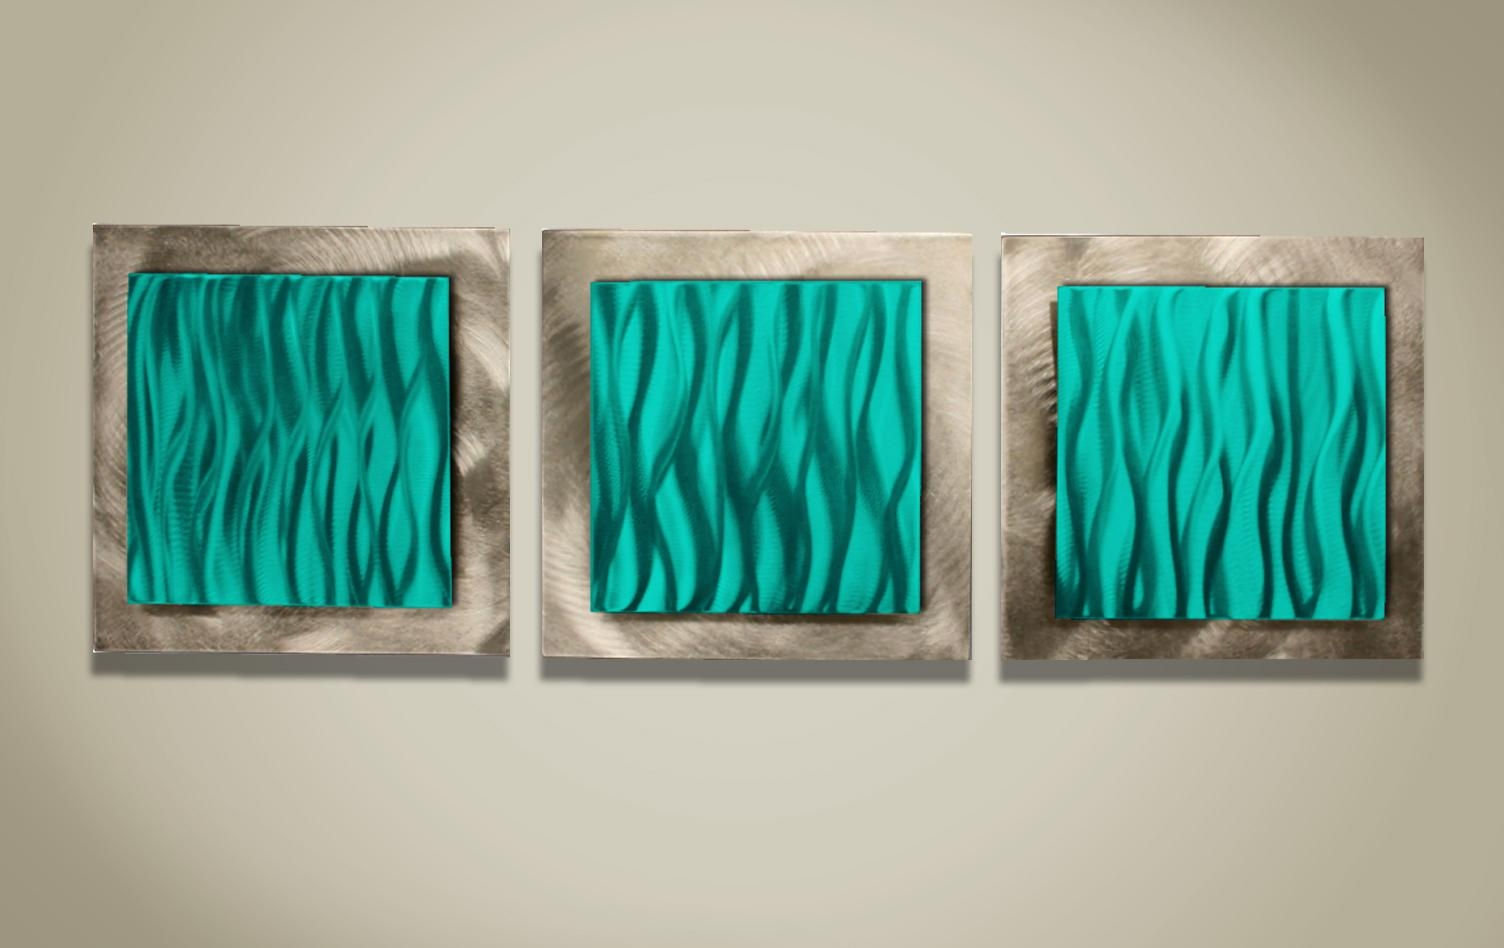 Charmant Wall Decor Turquoise U2013 The Drawing Room Interiors As 2016 Throughout Orange  And Turquoise Wall Art